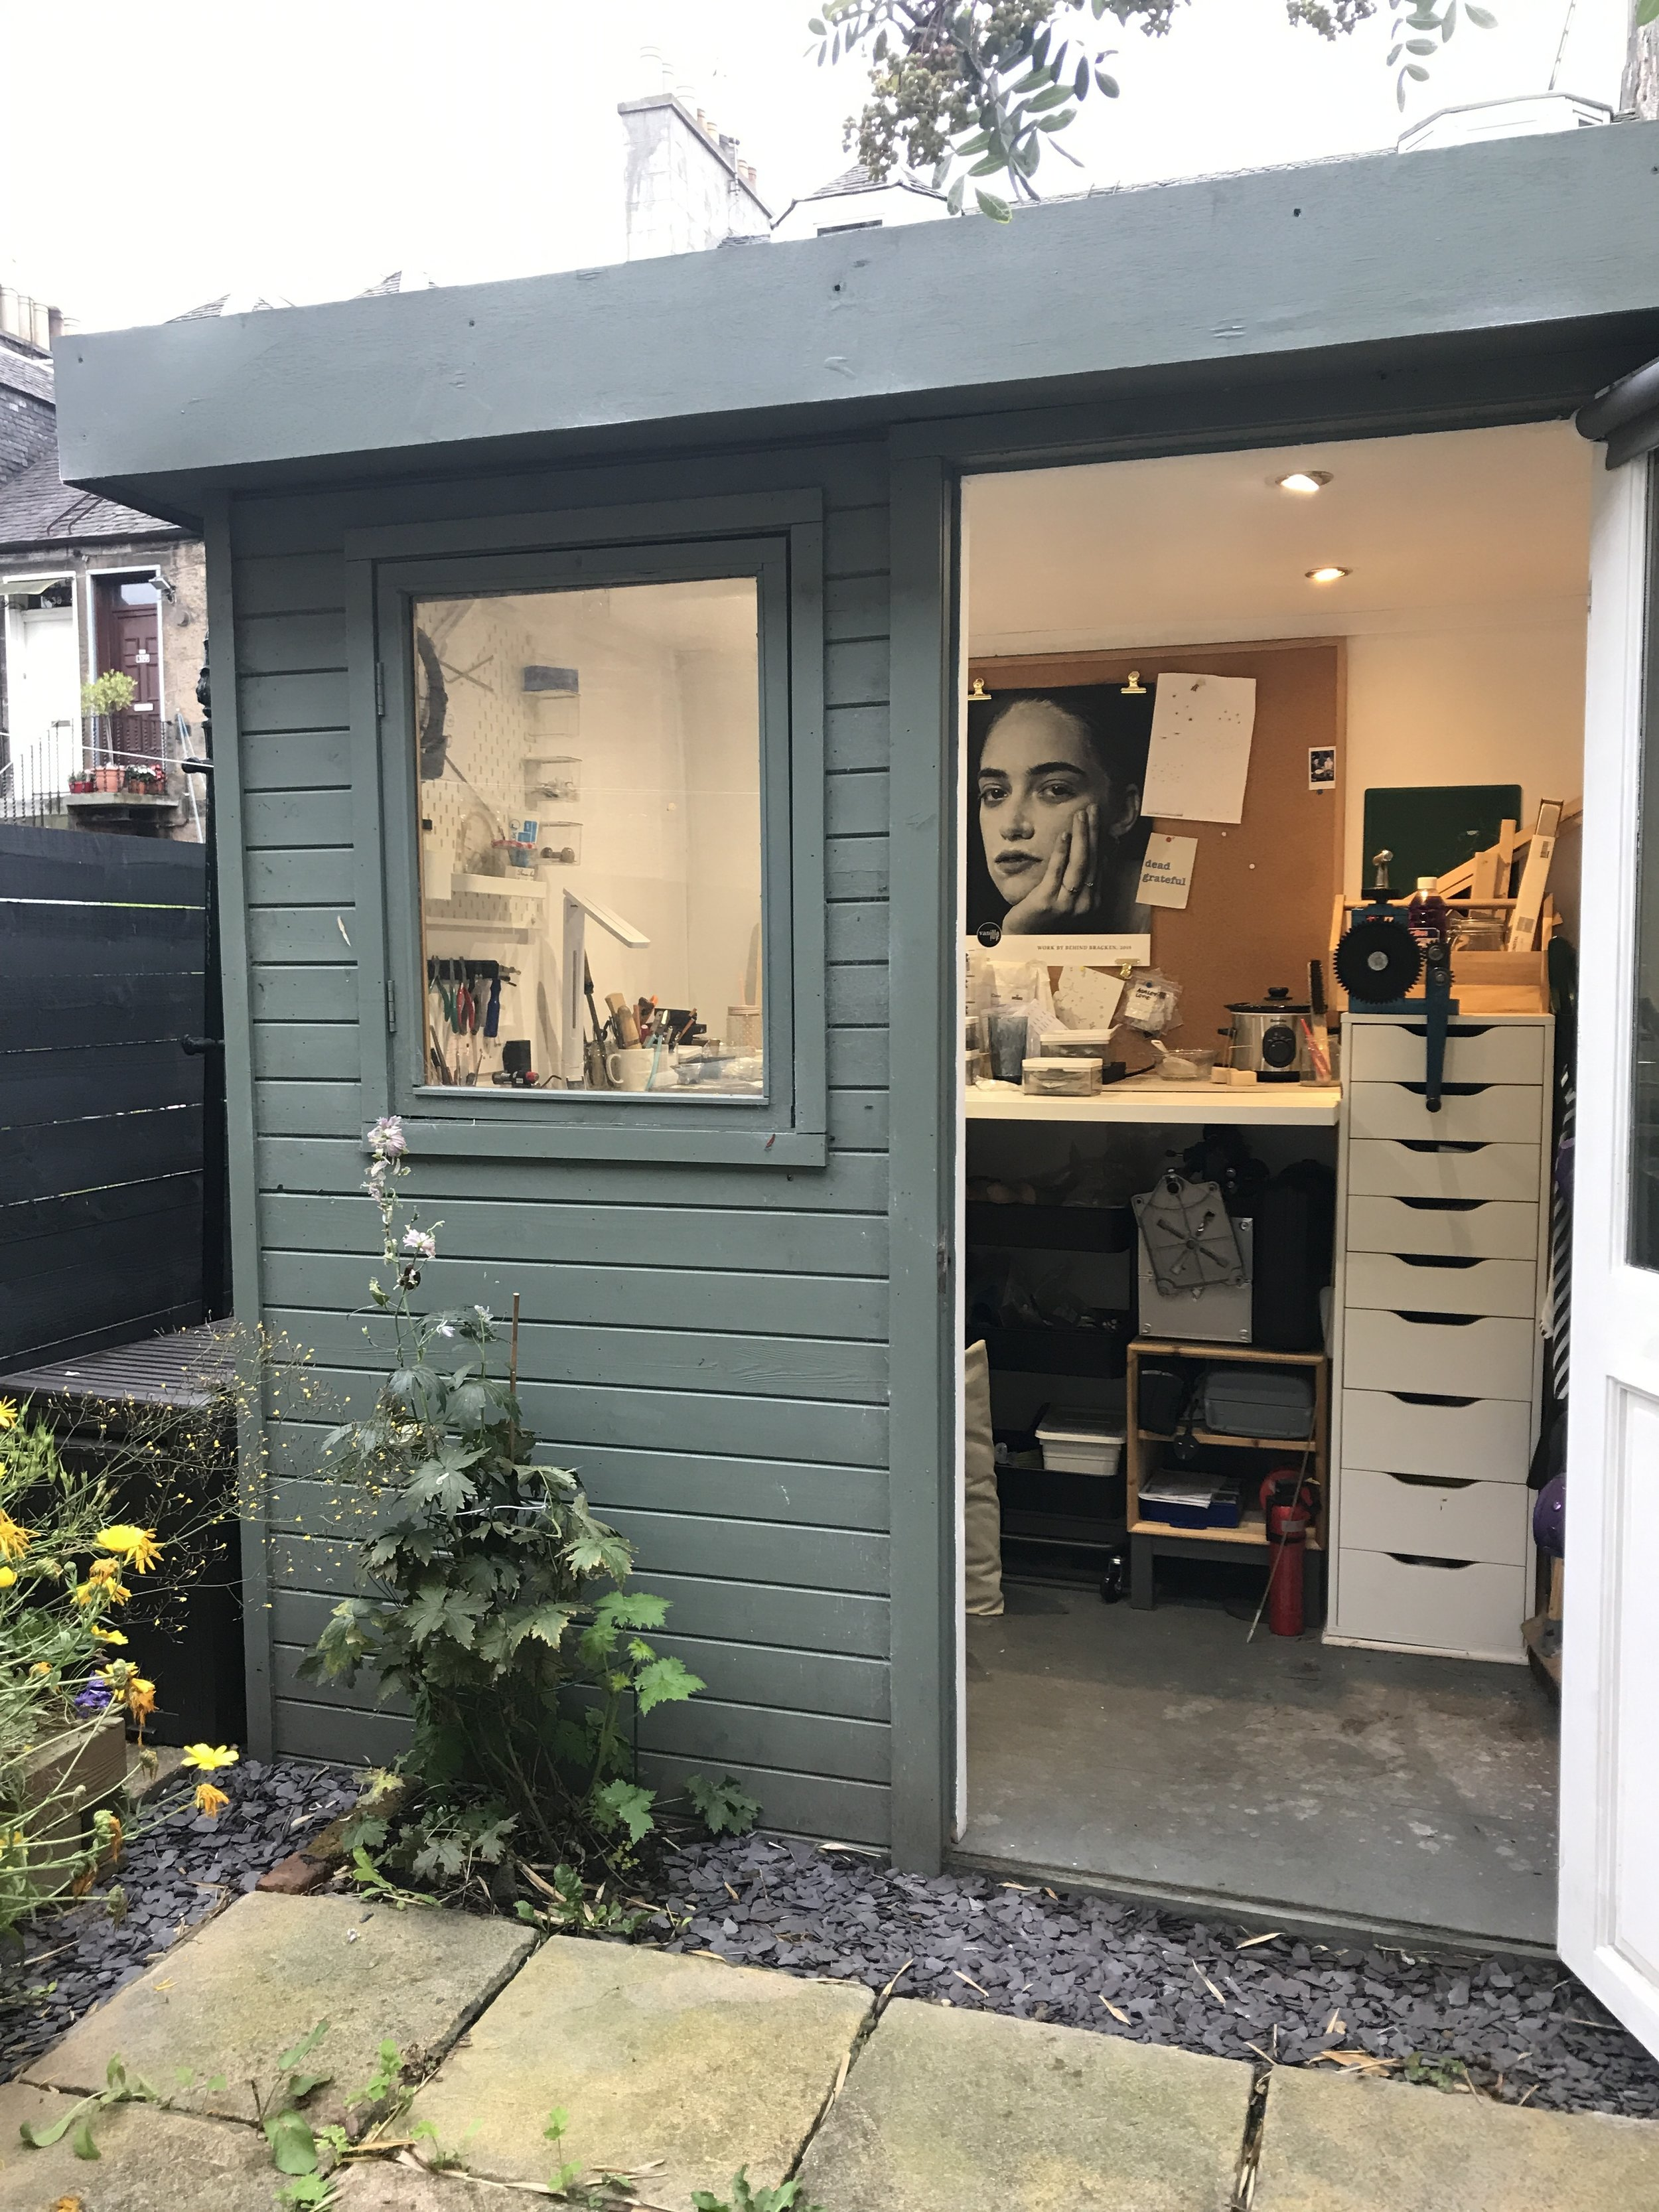 Ashley's home studio - living the shed dream!